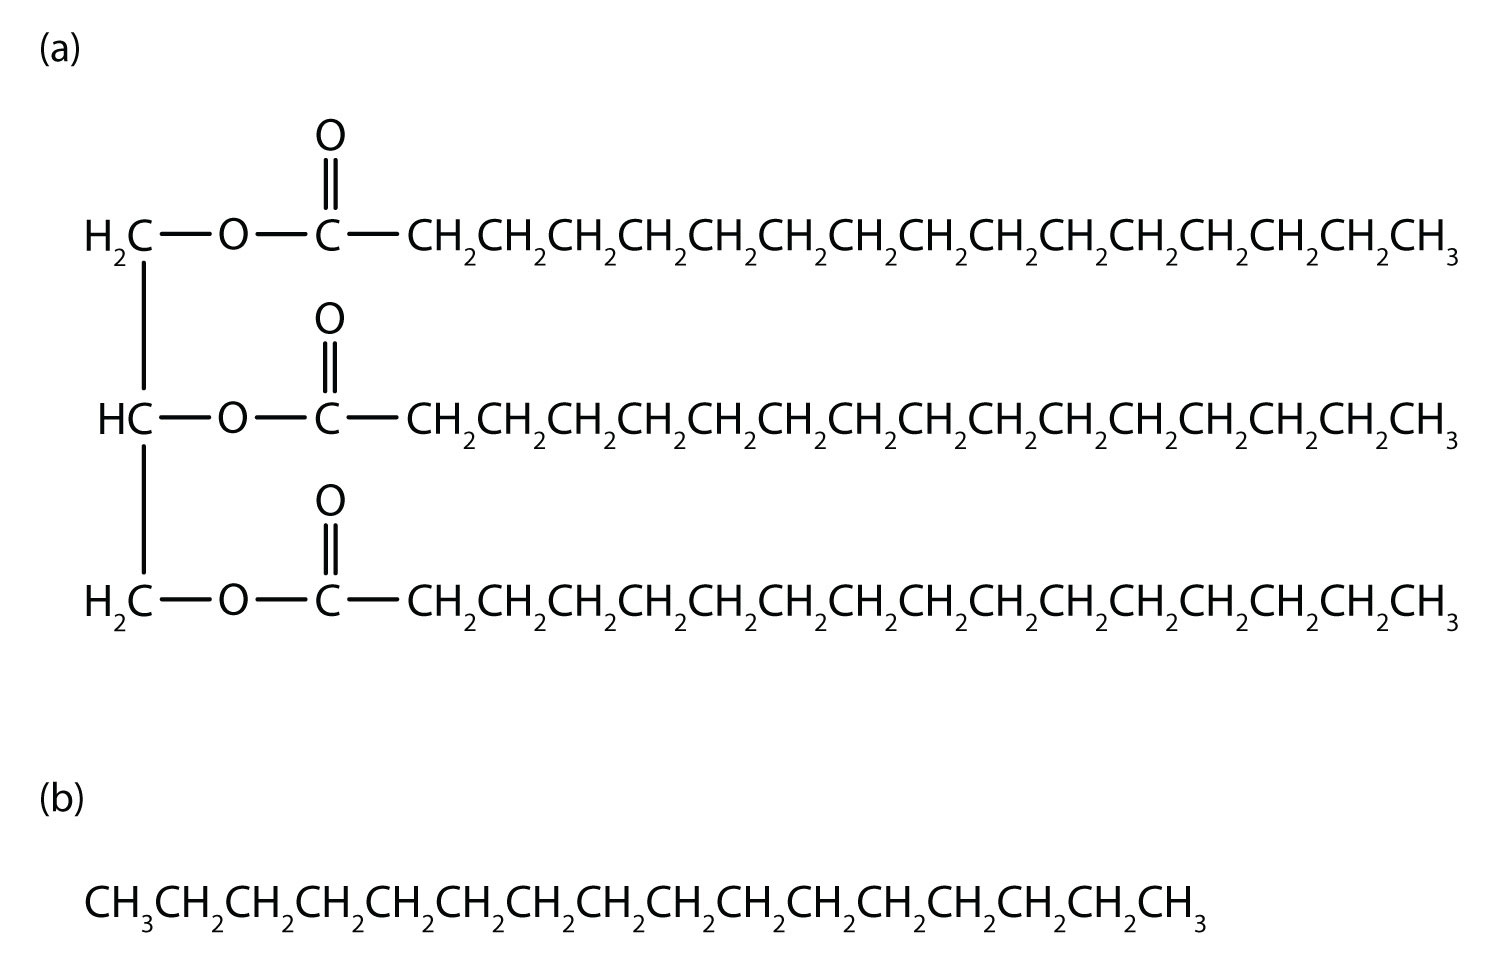 The long formula of the fat shows three long hydrocarbon chains. This structure is similar to long chain alkane family members.